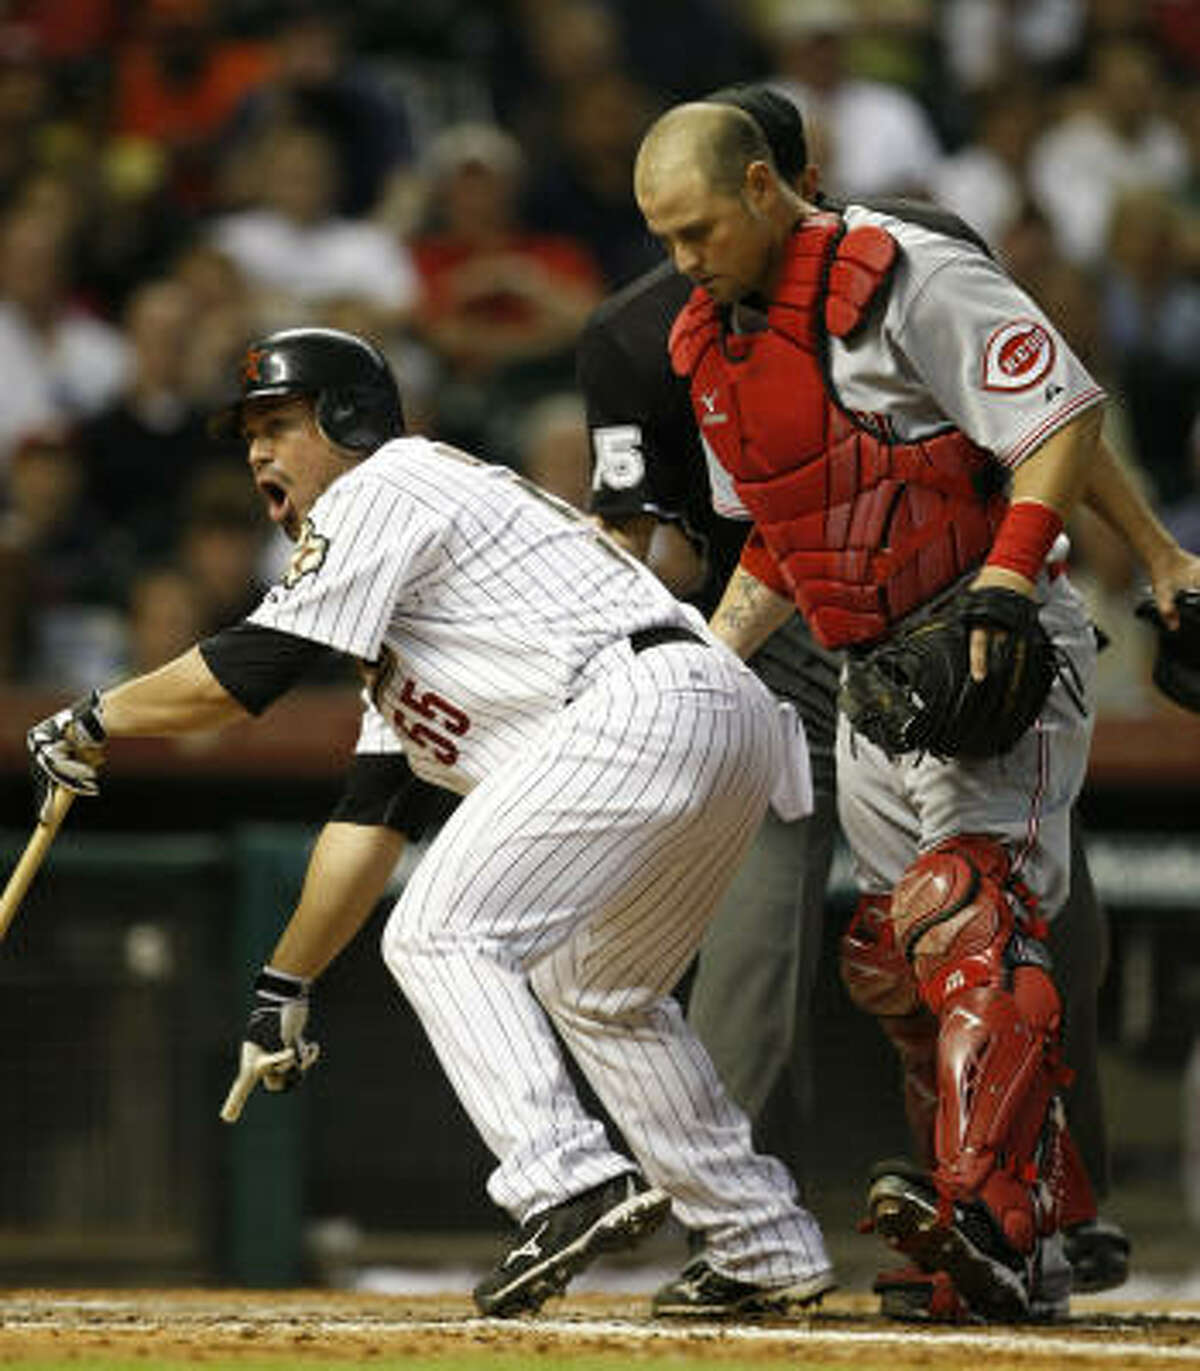 Astros catcher Humberto Quintero, left, points to the ground where he claims his foul ball hit prior to being tagged out by Reds catcher Ramon Hernandez in the seventh inning.